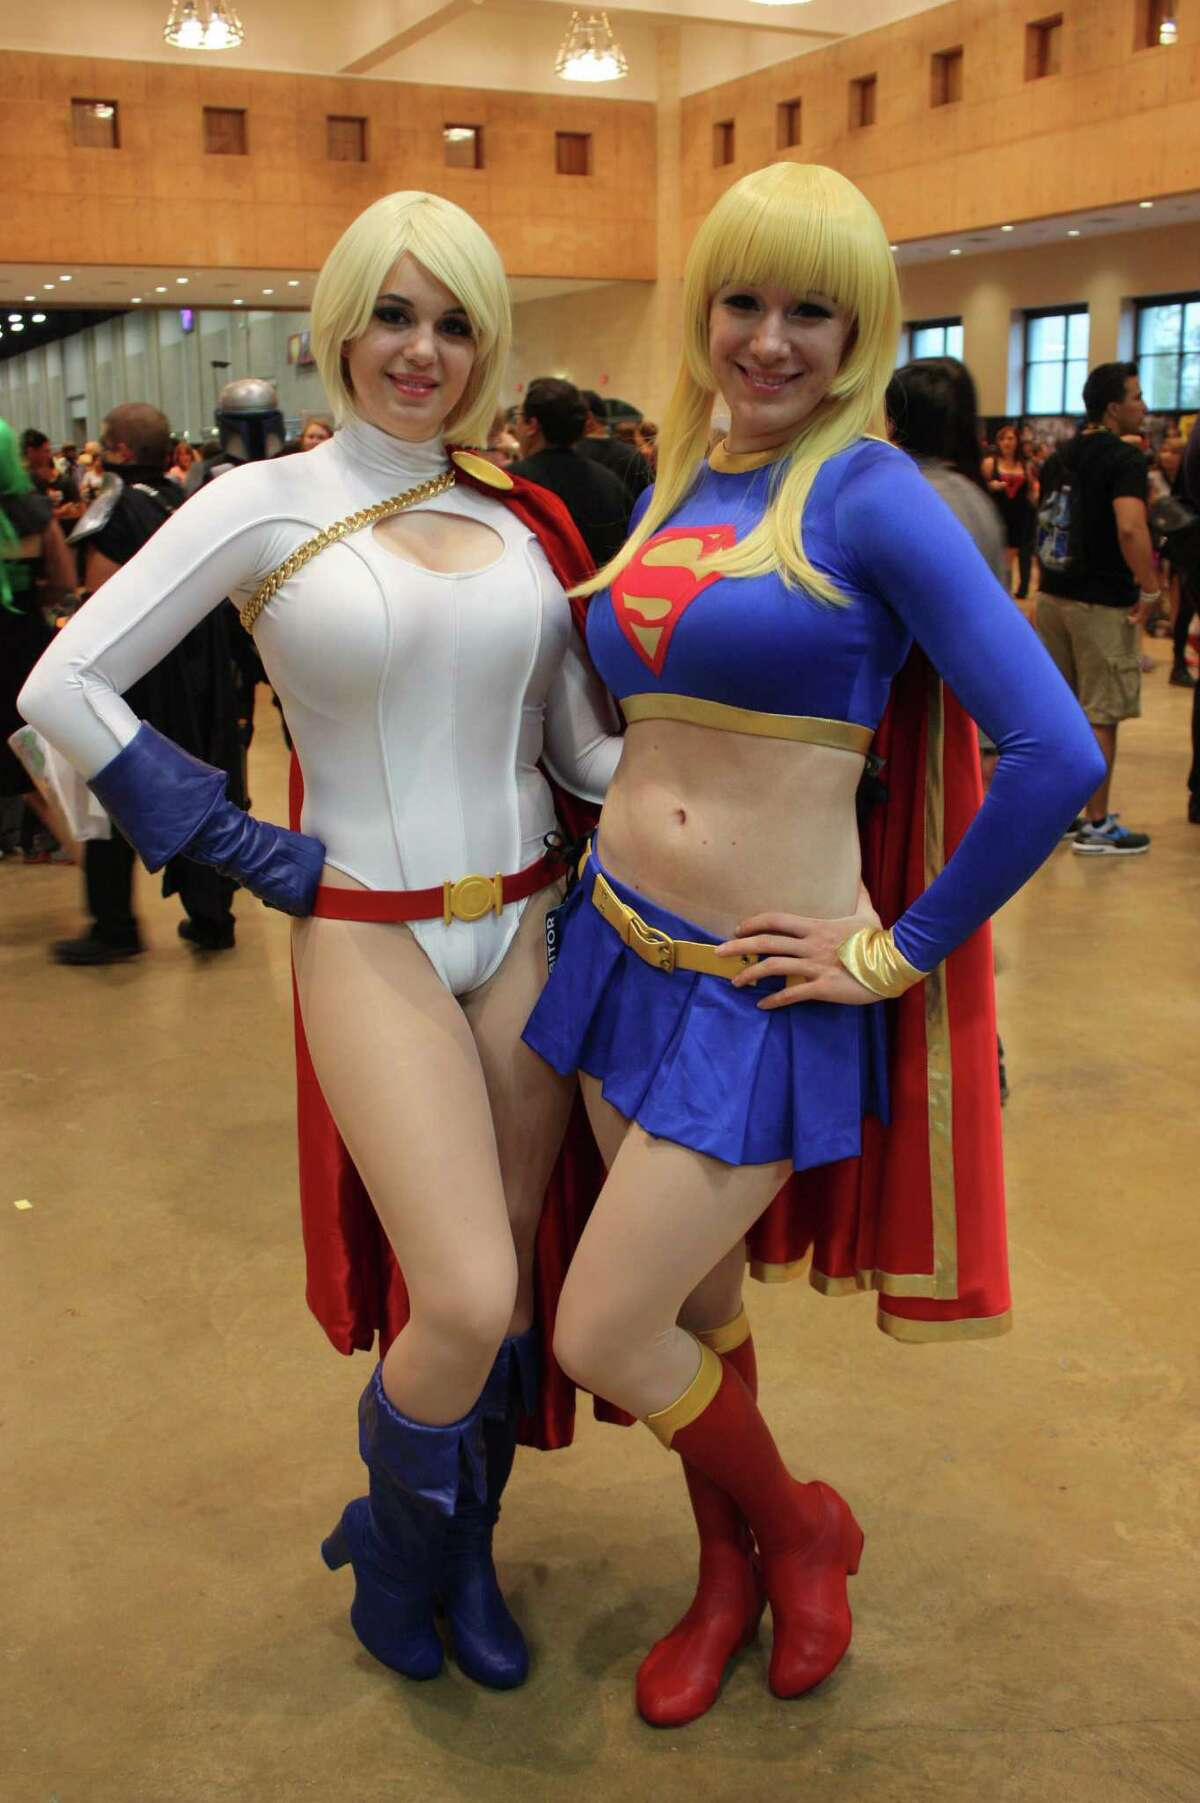 Fans hit the Convention Center in their best cosplay for day two of the pop culture and geek convention.